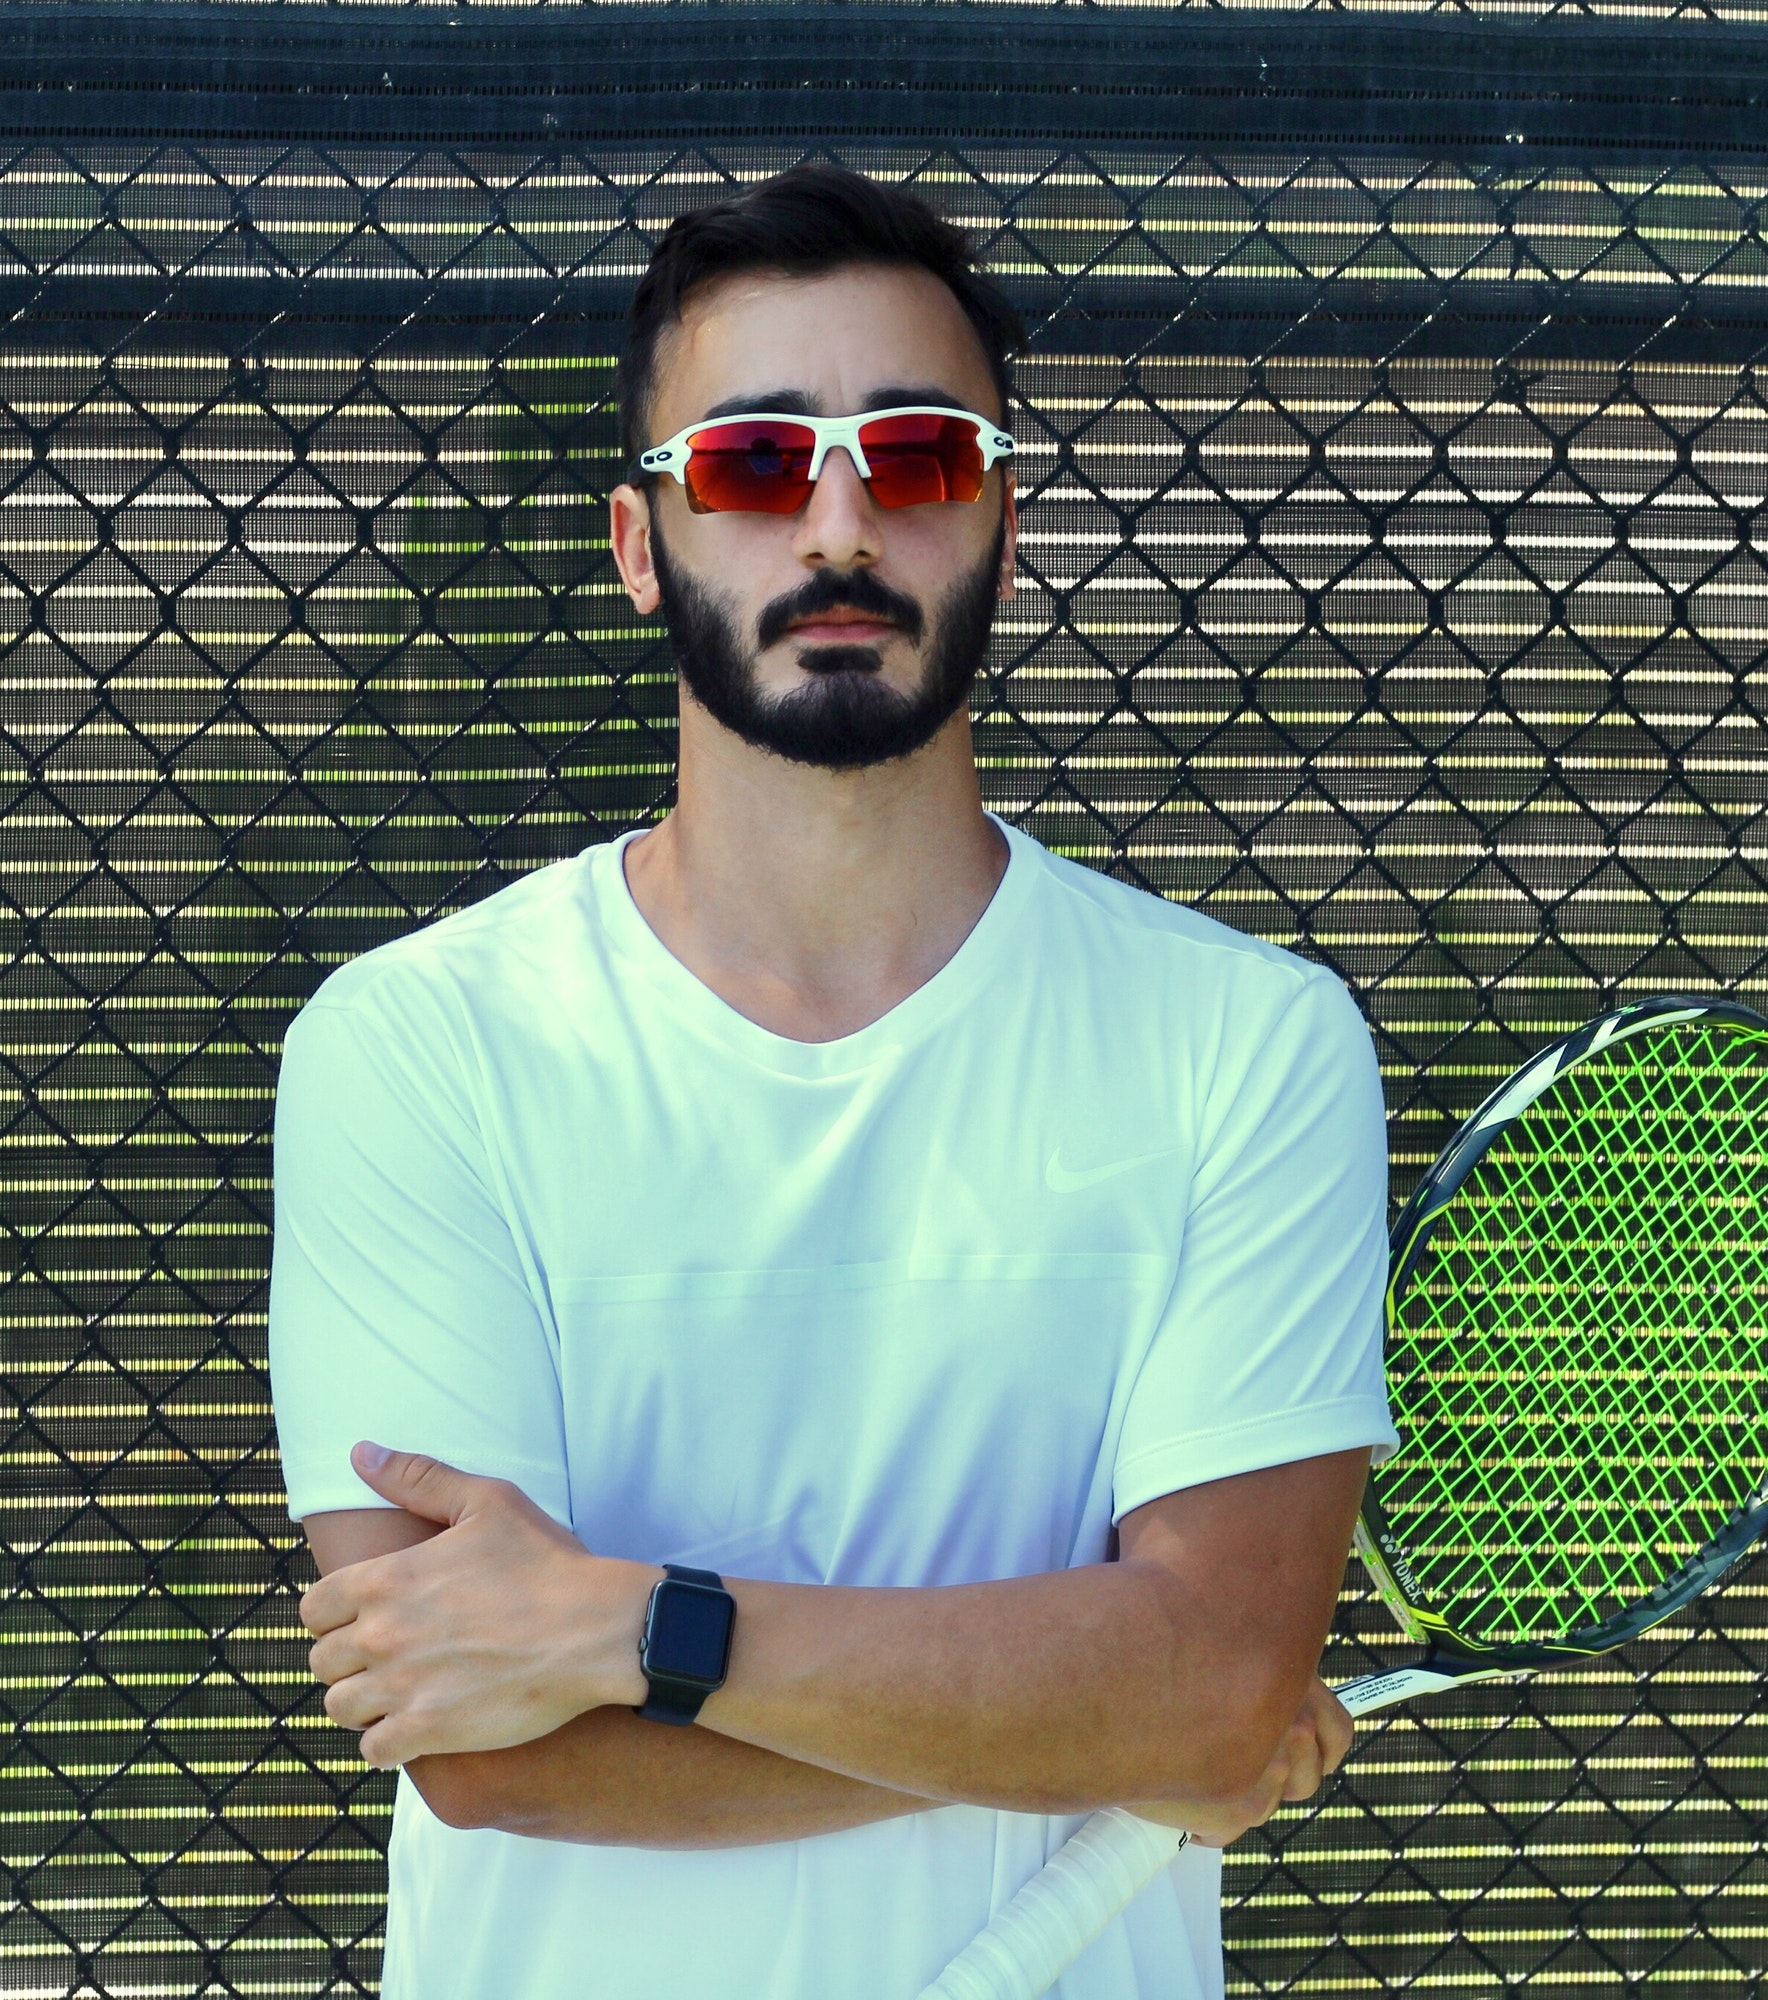 Sam T. teaches tennis lessons in Los Angeles, CA